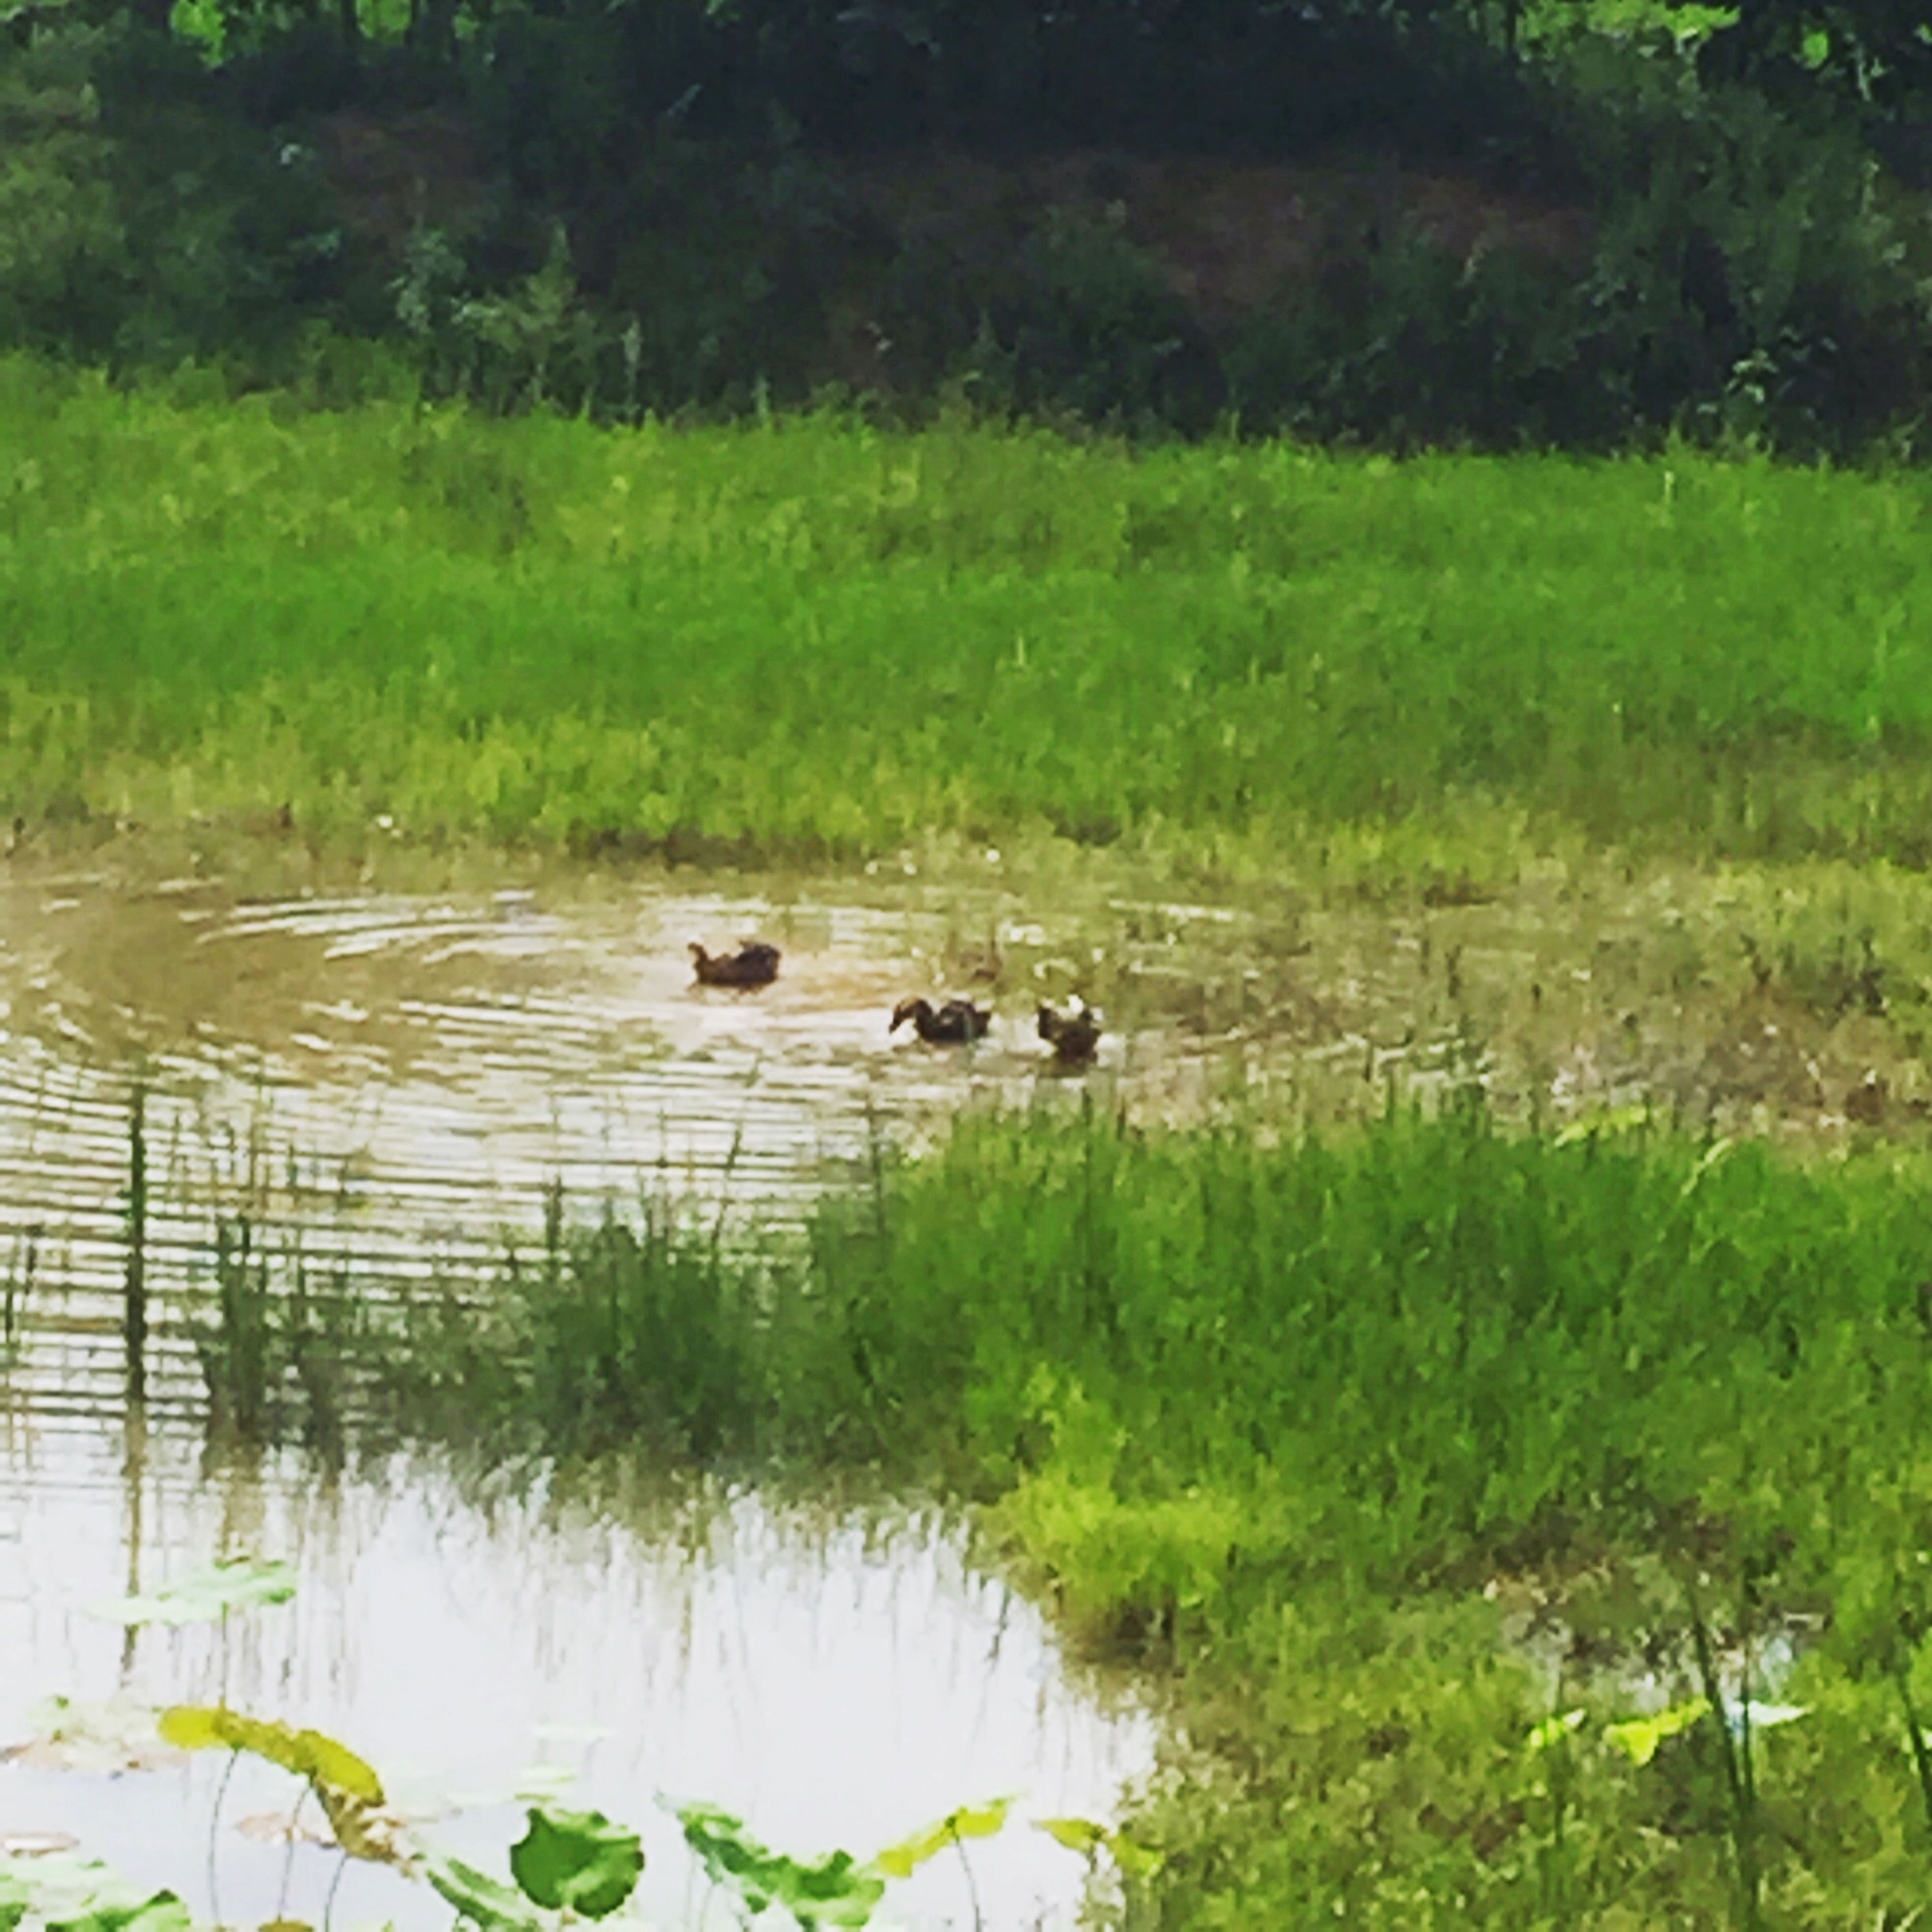 grass, animal themes, water, lake, green color, nature, plant, growth, tranquility, animals in the wild, tree, wildlife, reflection, duck, river, beauty in nature, day, high angle view, tranquil scene, mammal